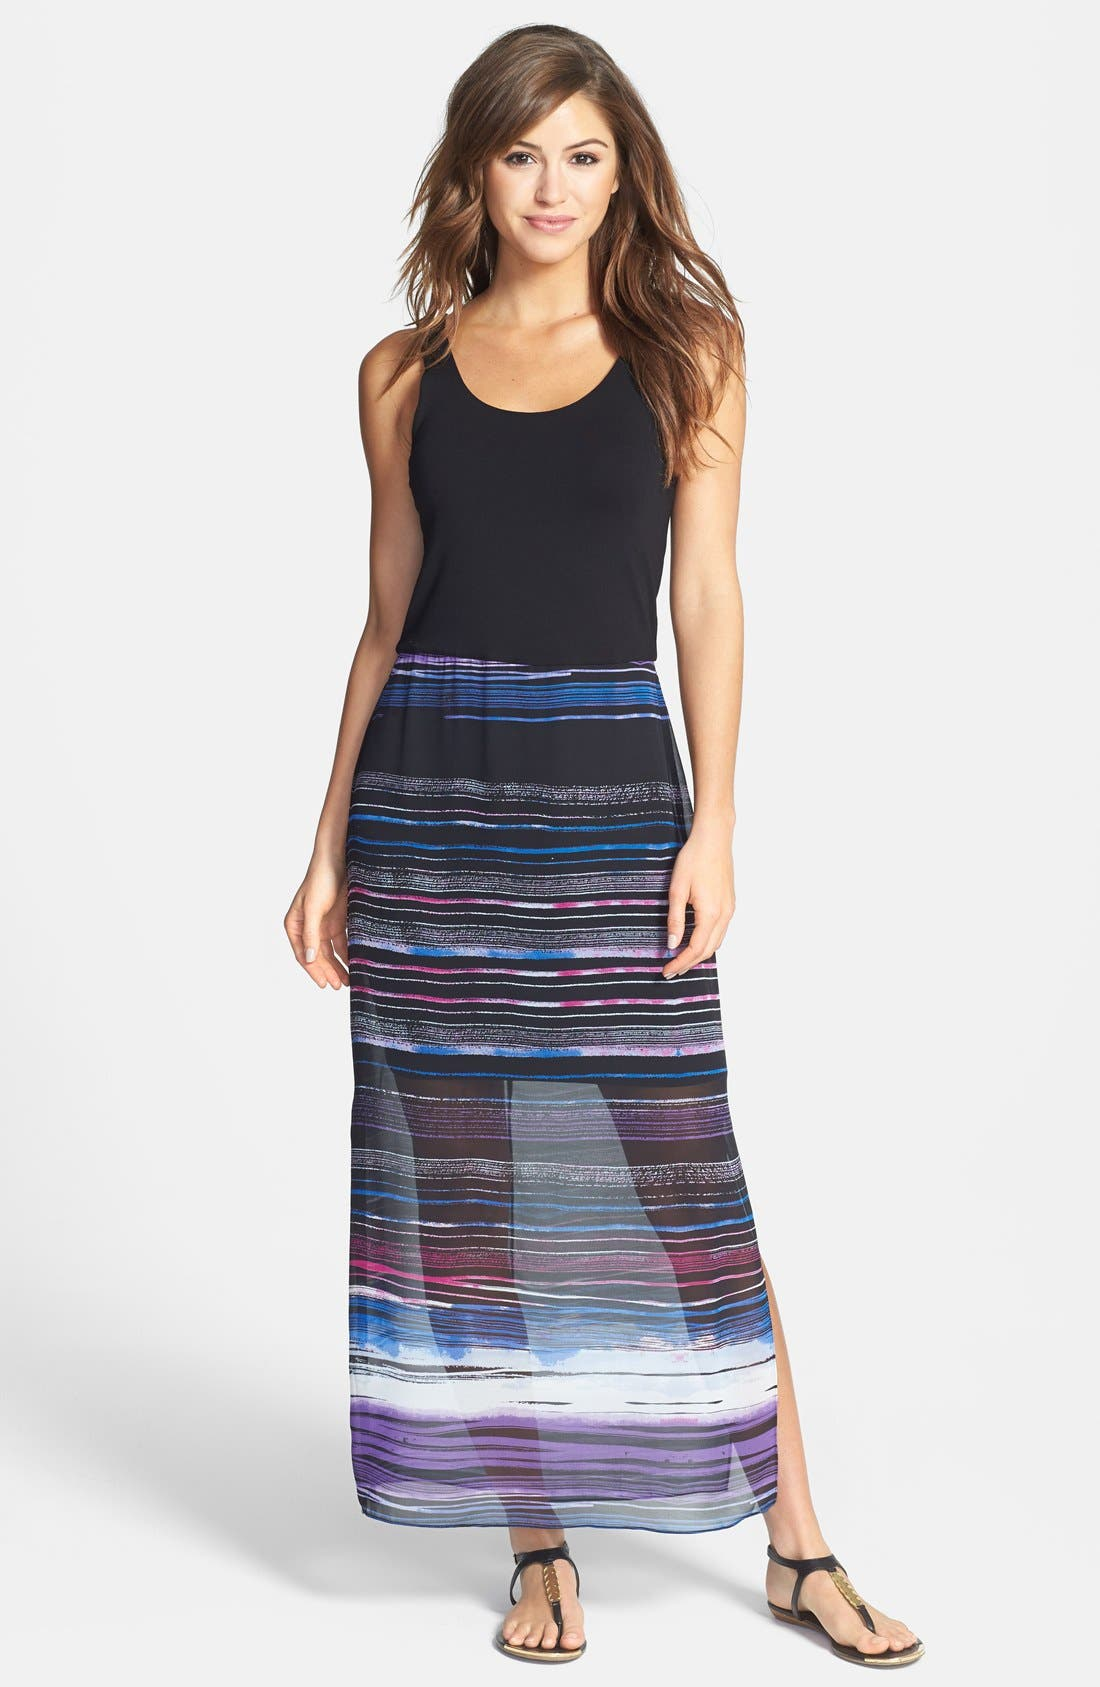 Main Image - Vince Camuto 'Sweep Stripe' Chiffon Overlay Maxi Dress (Regular & Petite)